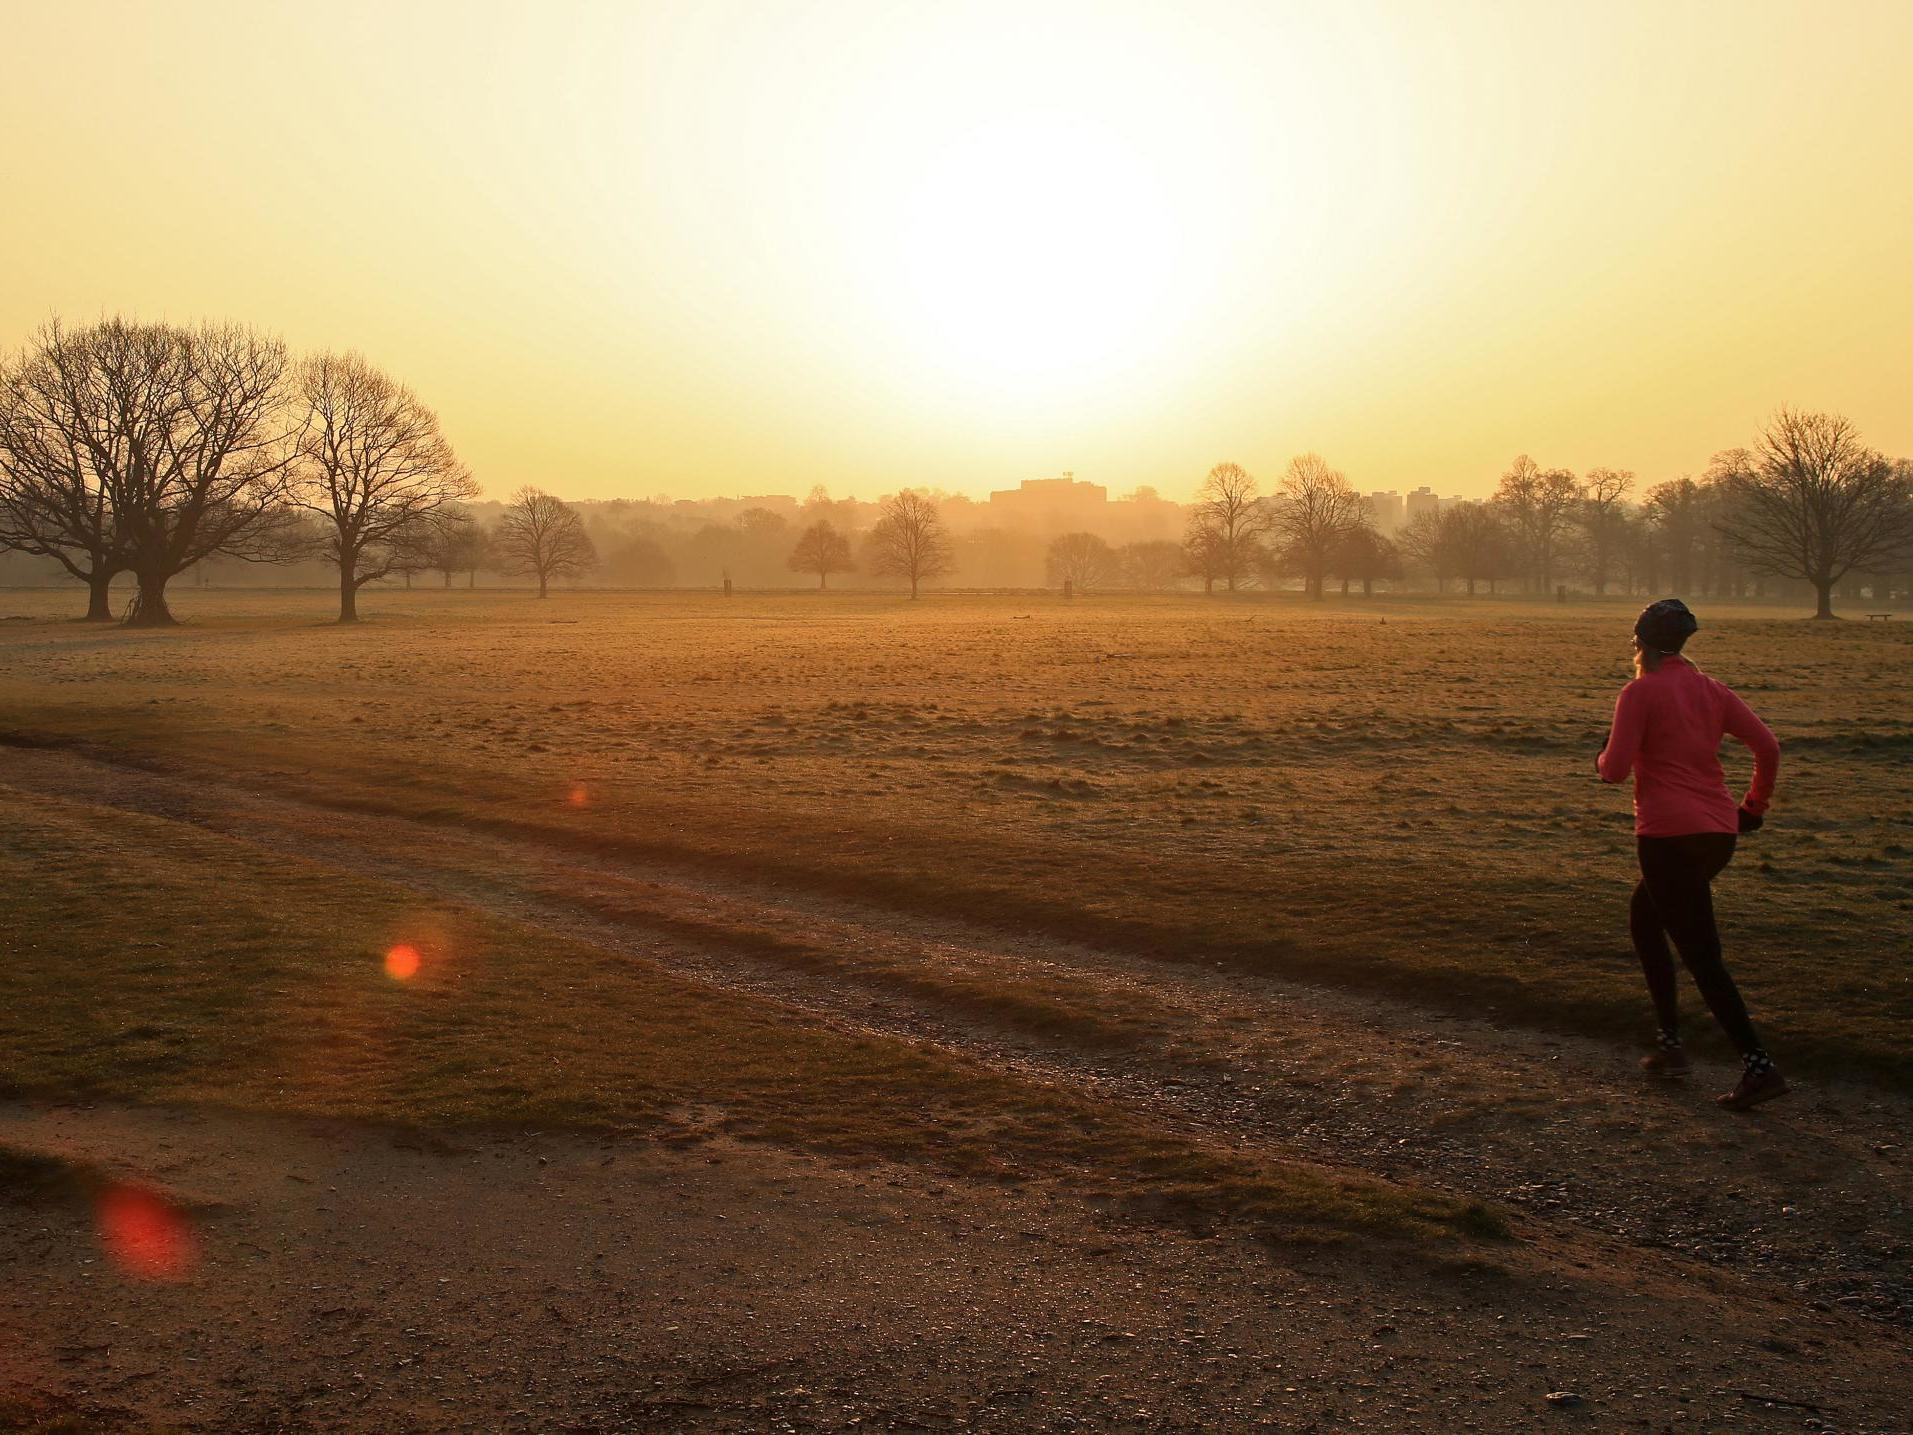 Outdoor exercise could be banned if Britons continue to flout lockdown rules, government warns